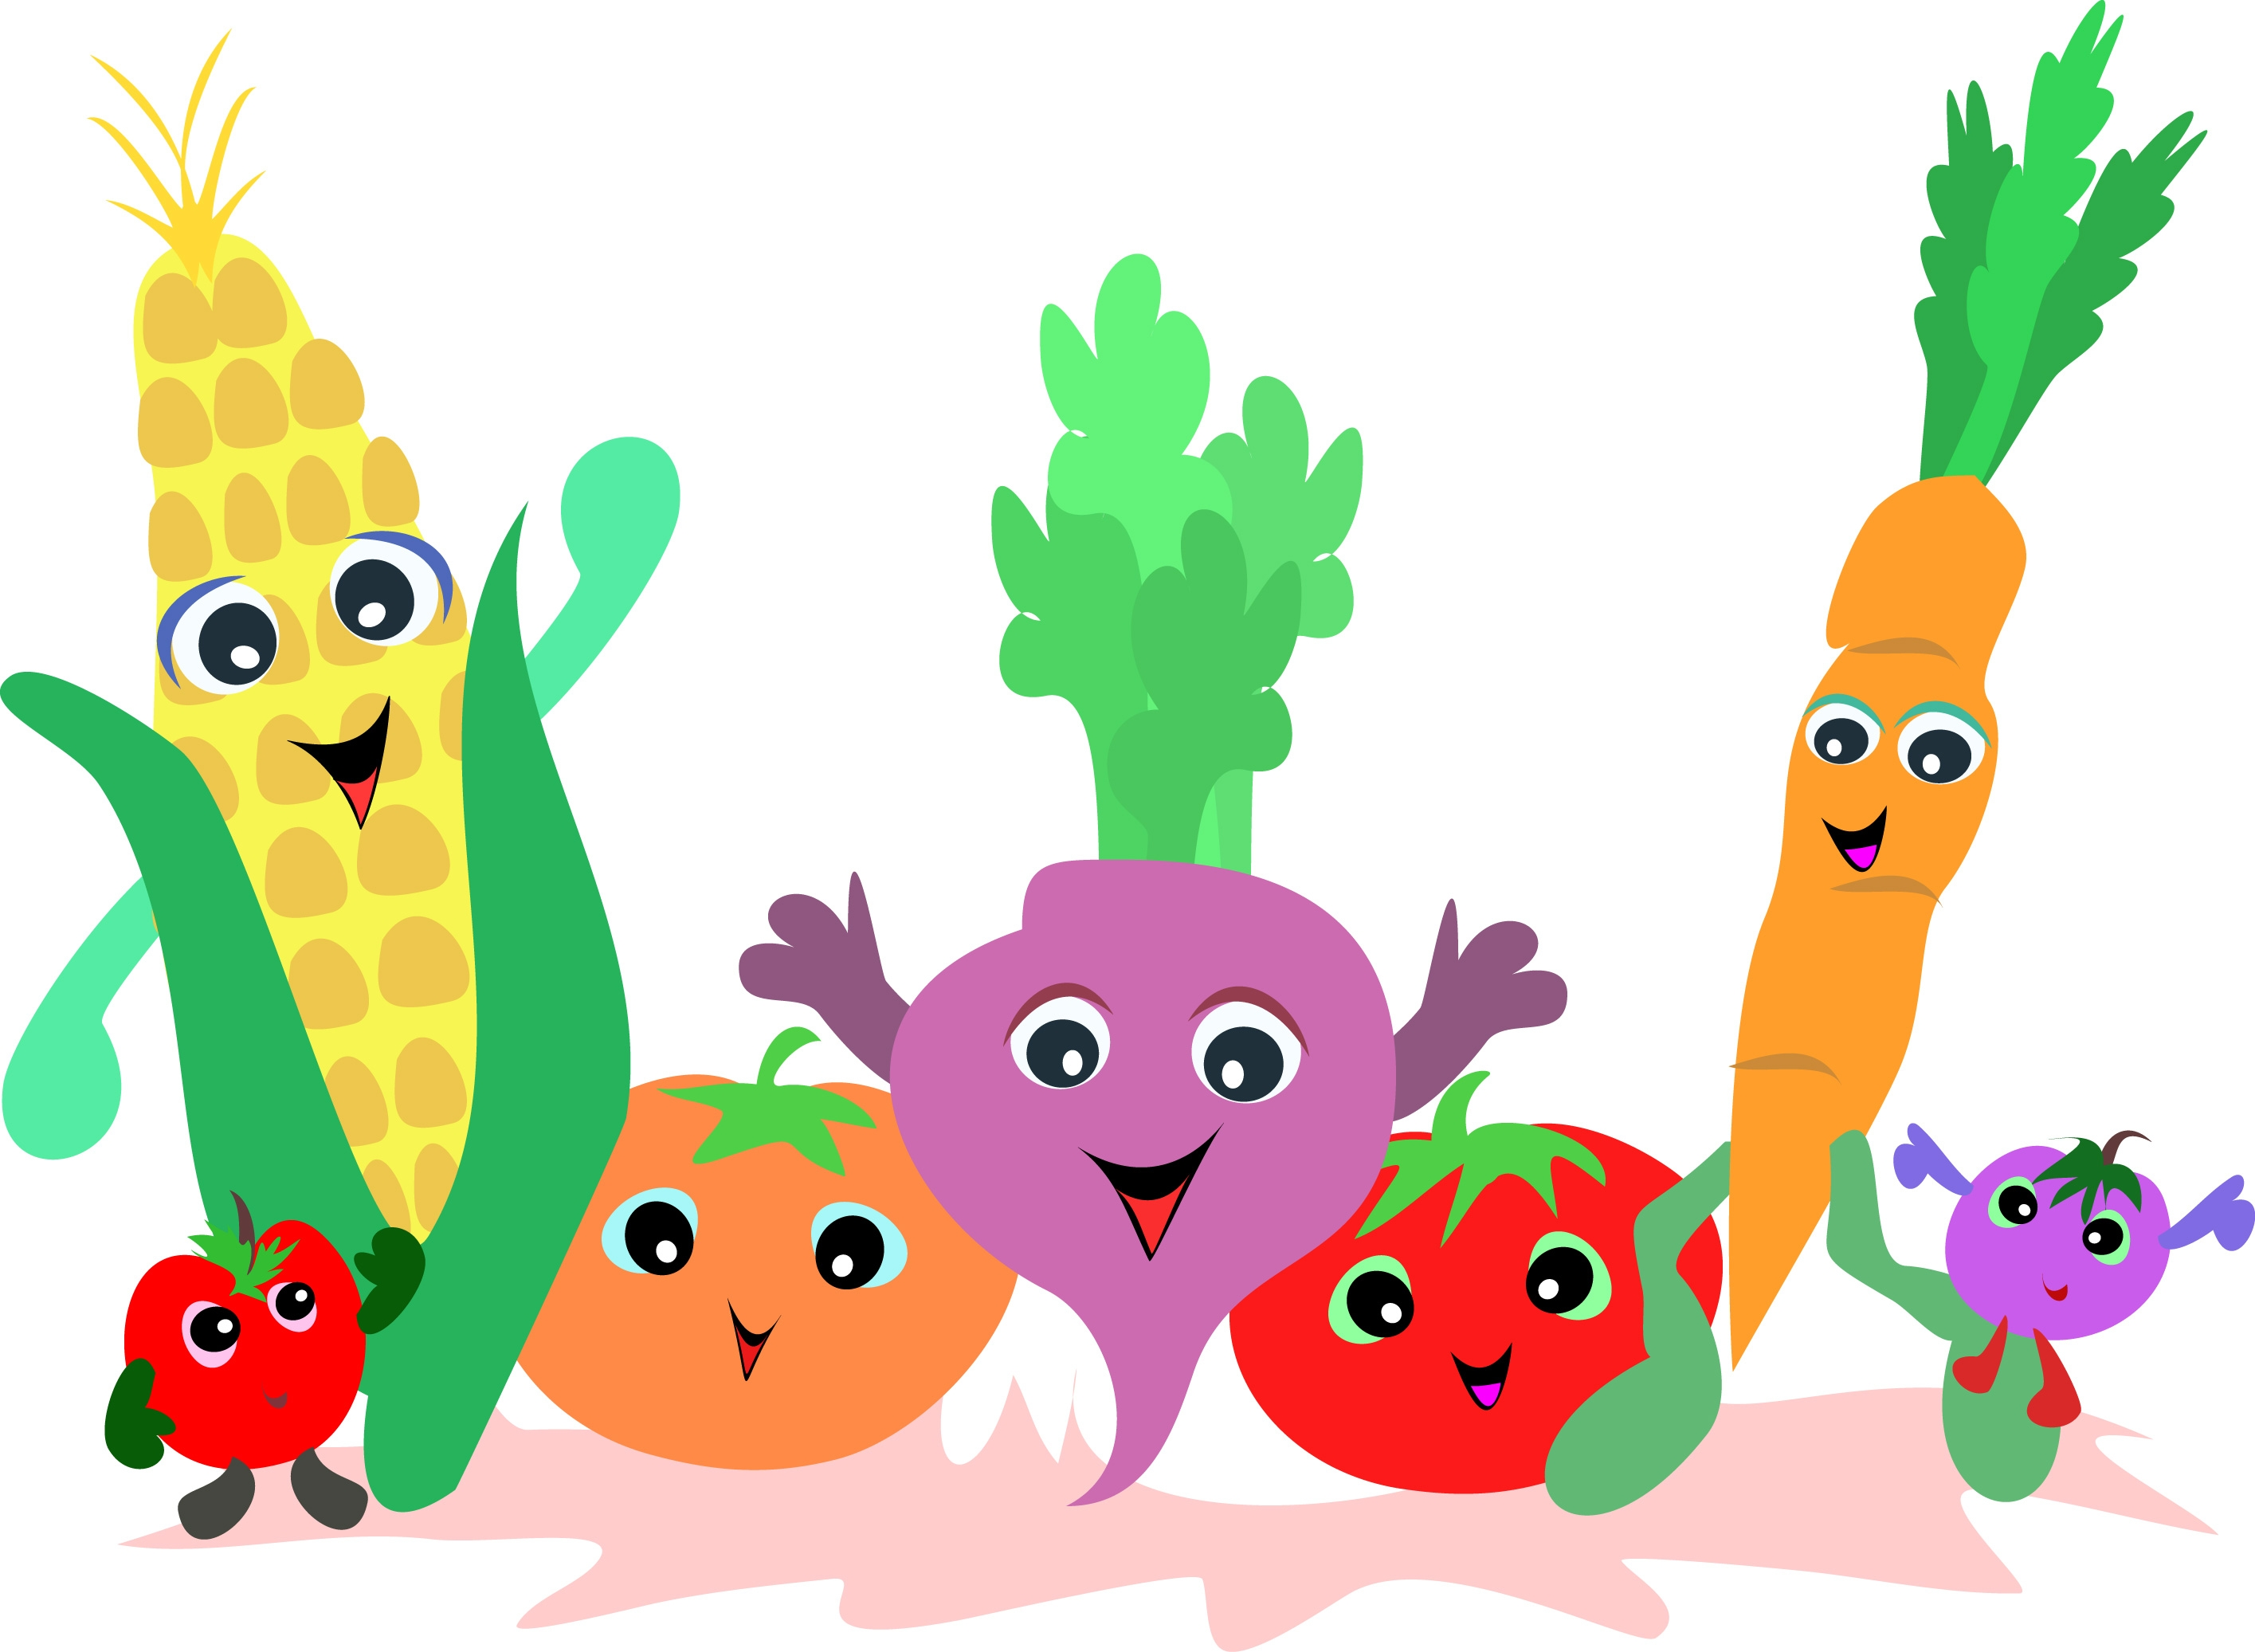 Cute vegetables clipart jpg library download Free Cute Veggie Cliparts, Download Free Clip Art, Free Clip Art on ... jpg library download